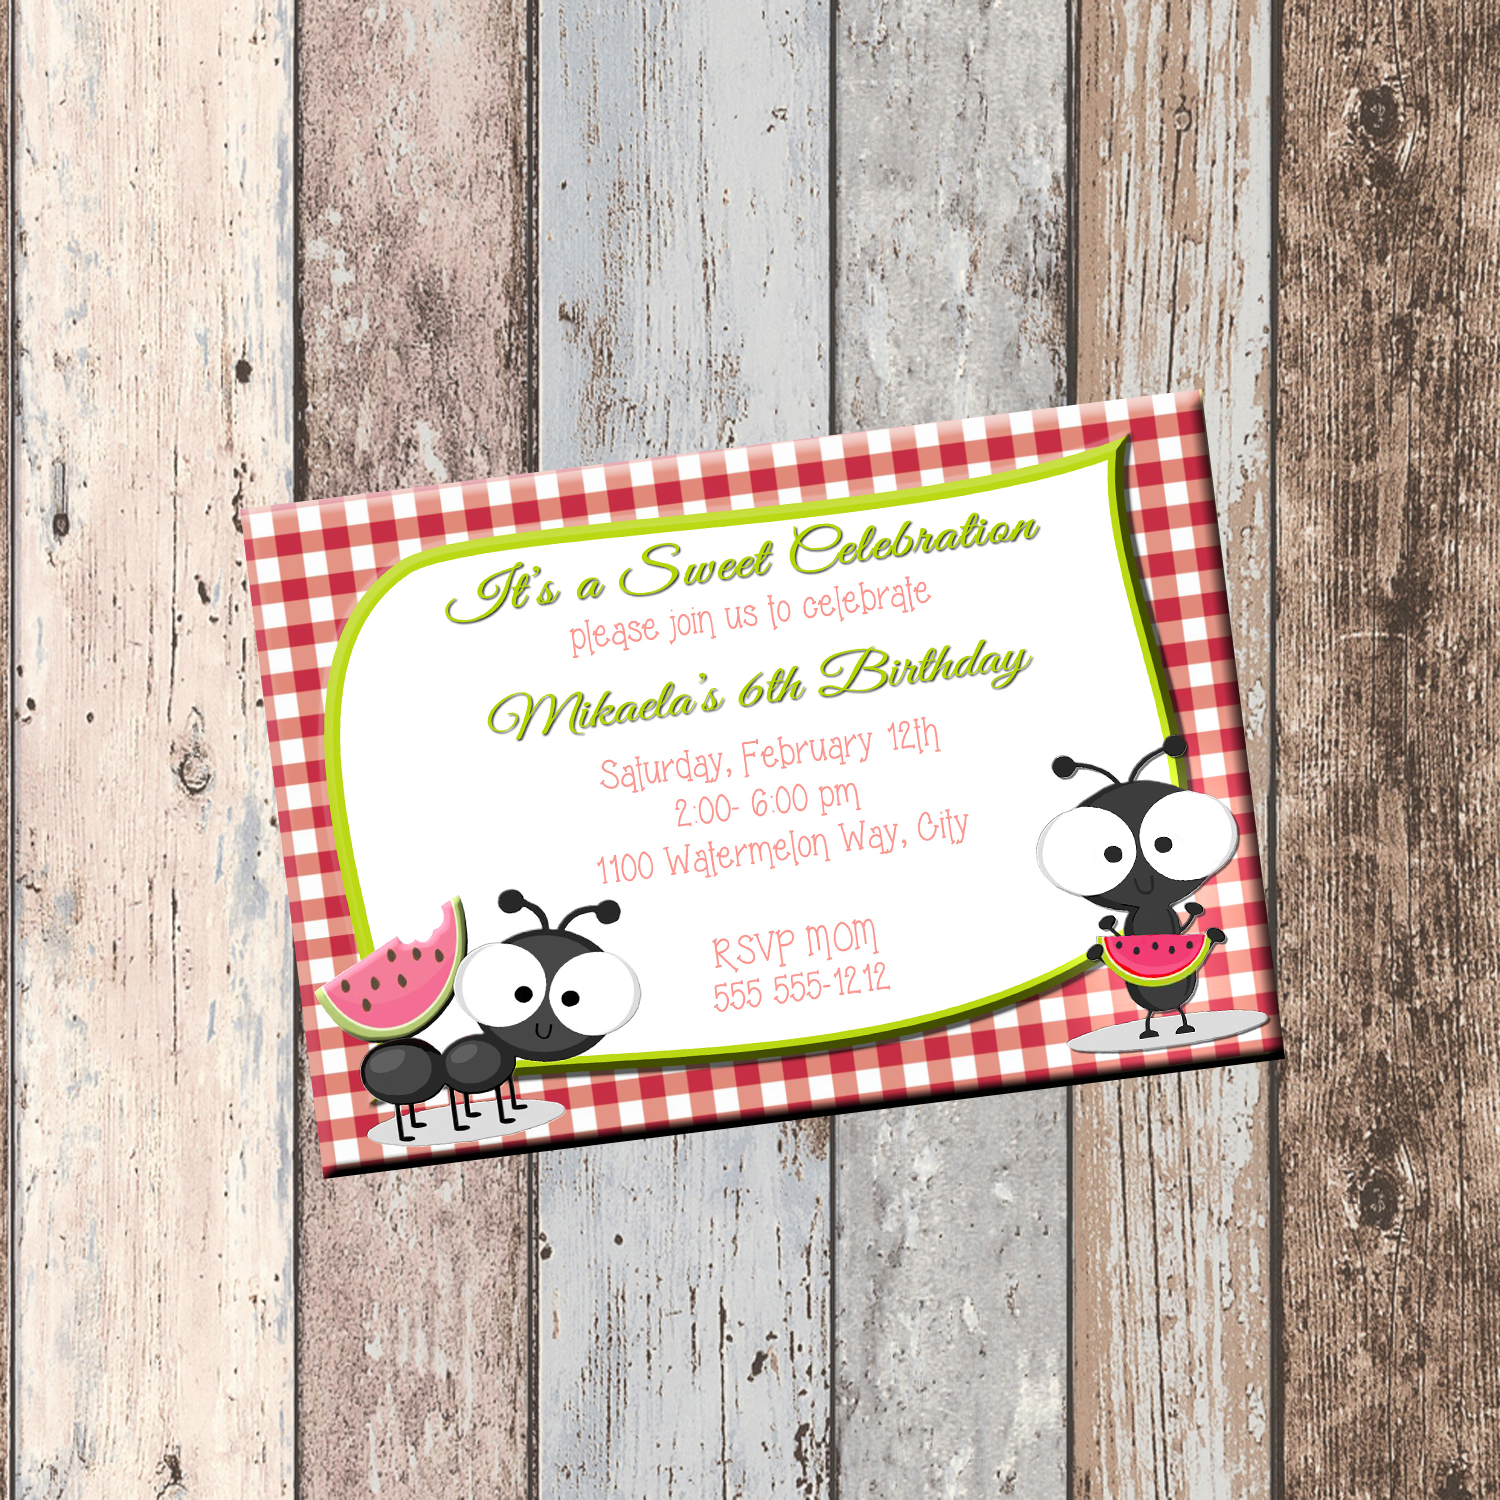 picnic ants watermelon personalized birthday invitation 1 sided birthday card picnic party invitation